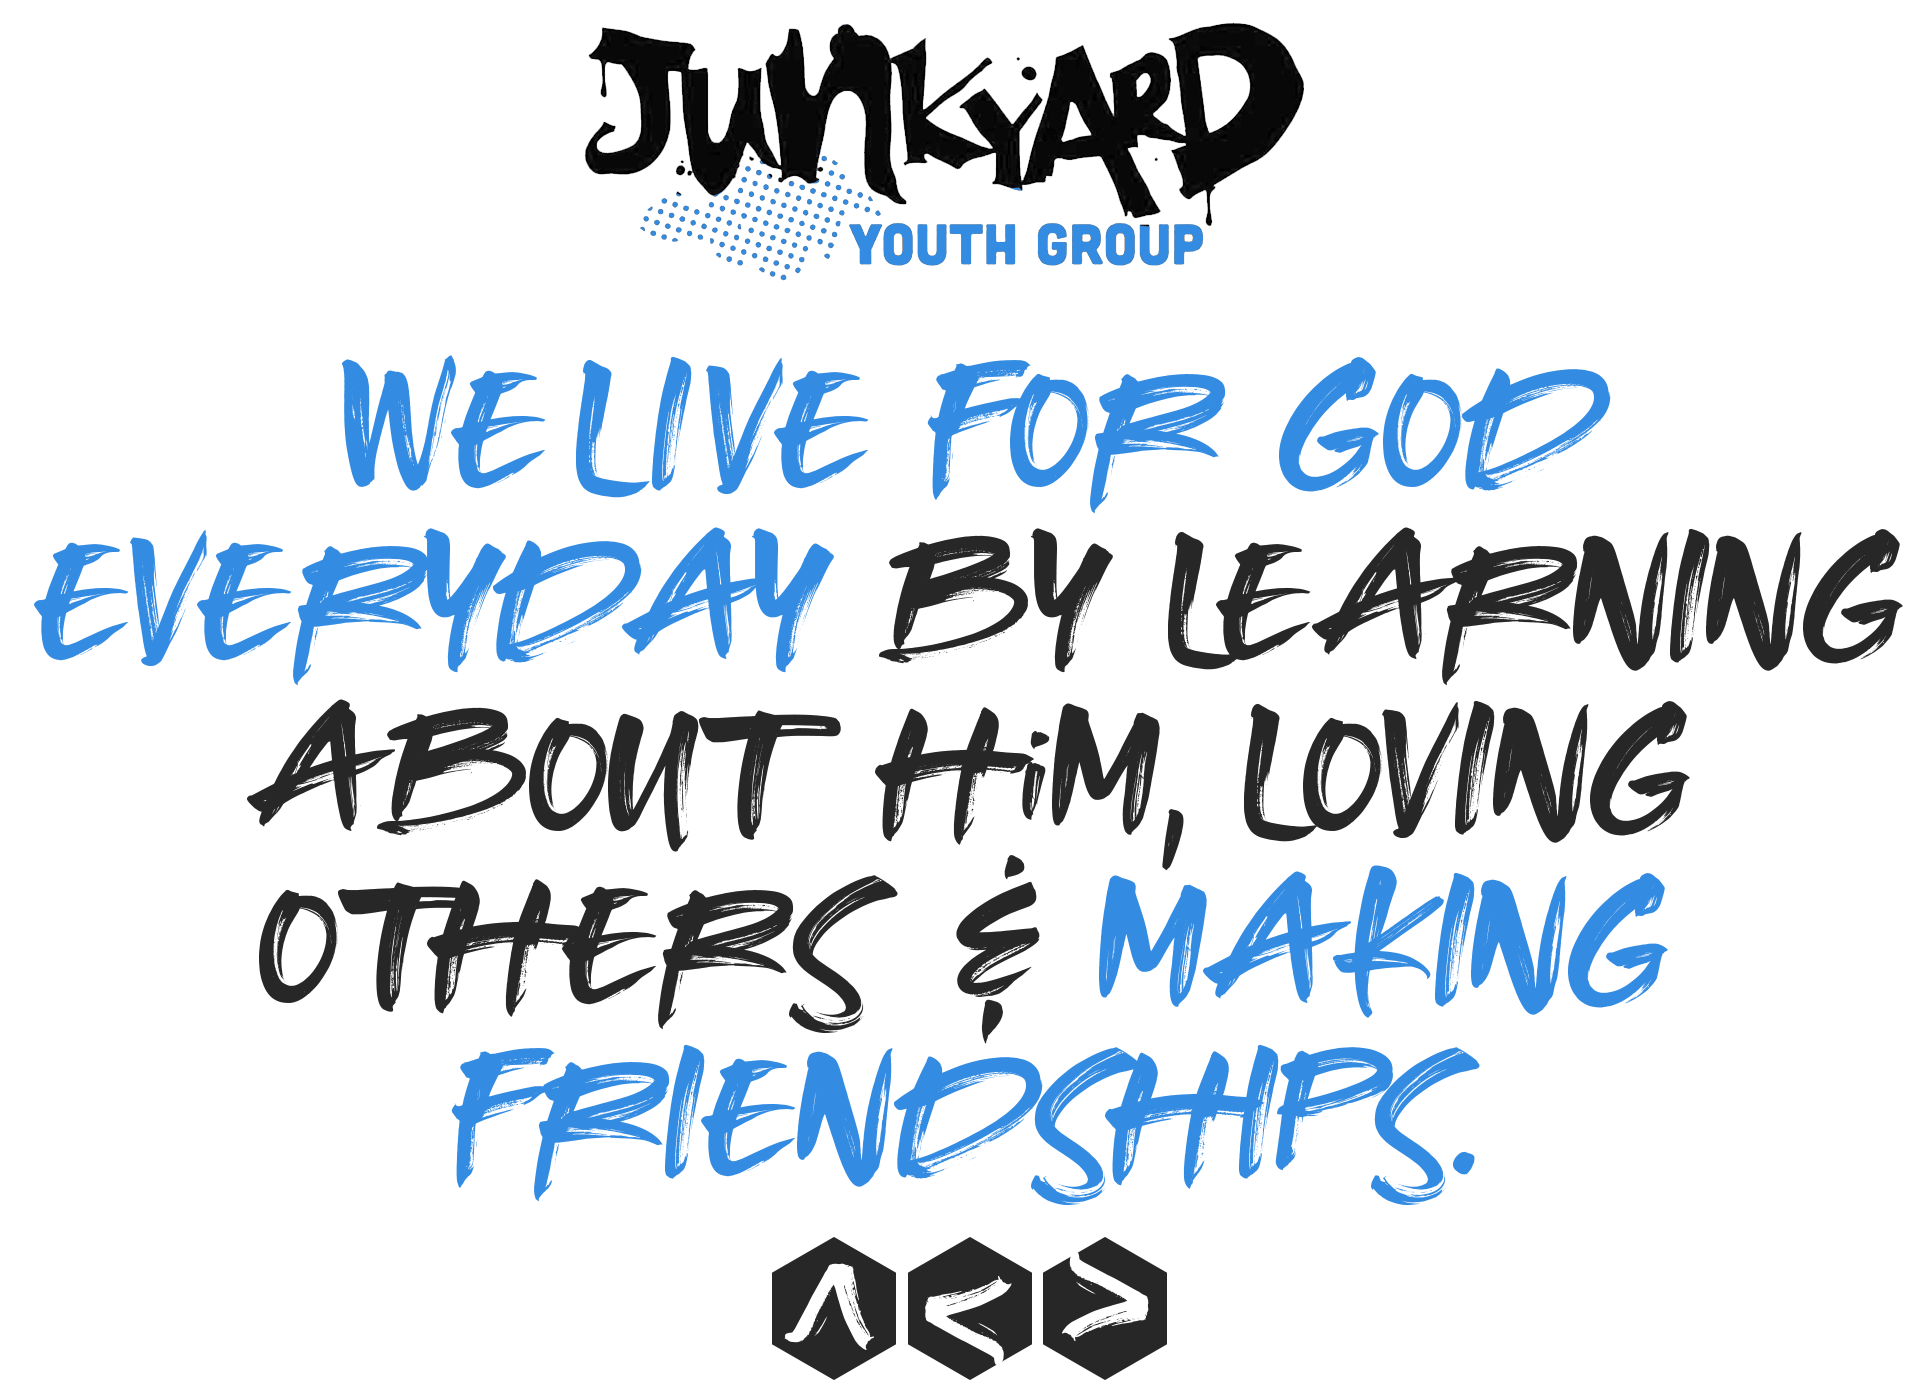 Junkyard Youth Group - We live for God everyday by learning about Him, loving others and making friendships.